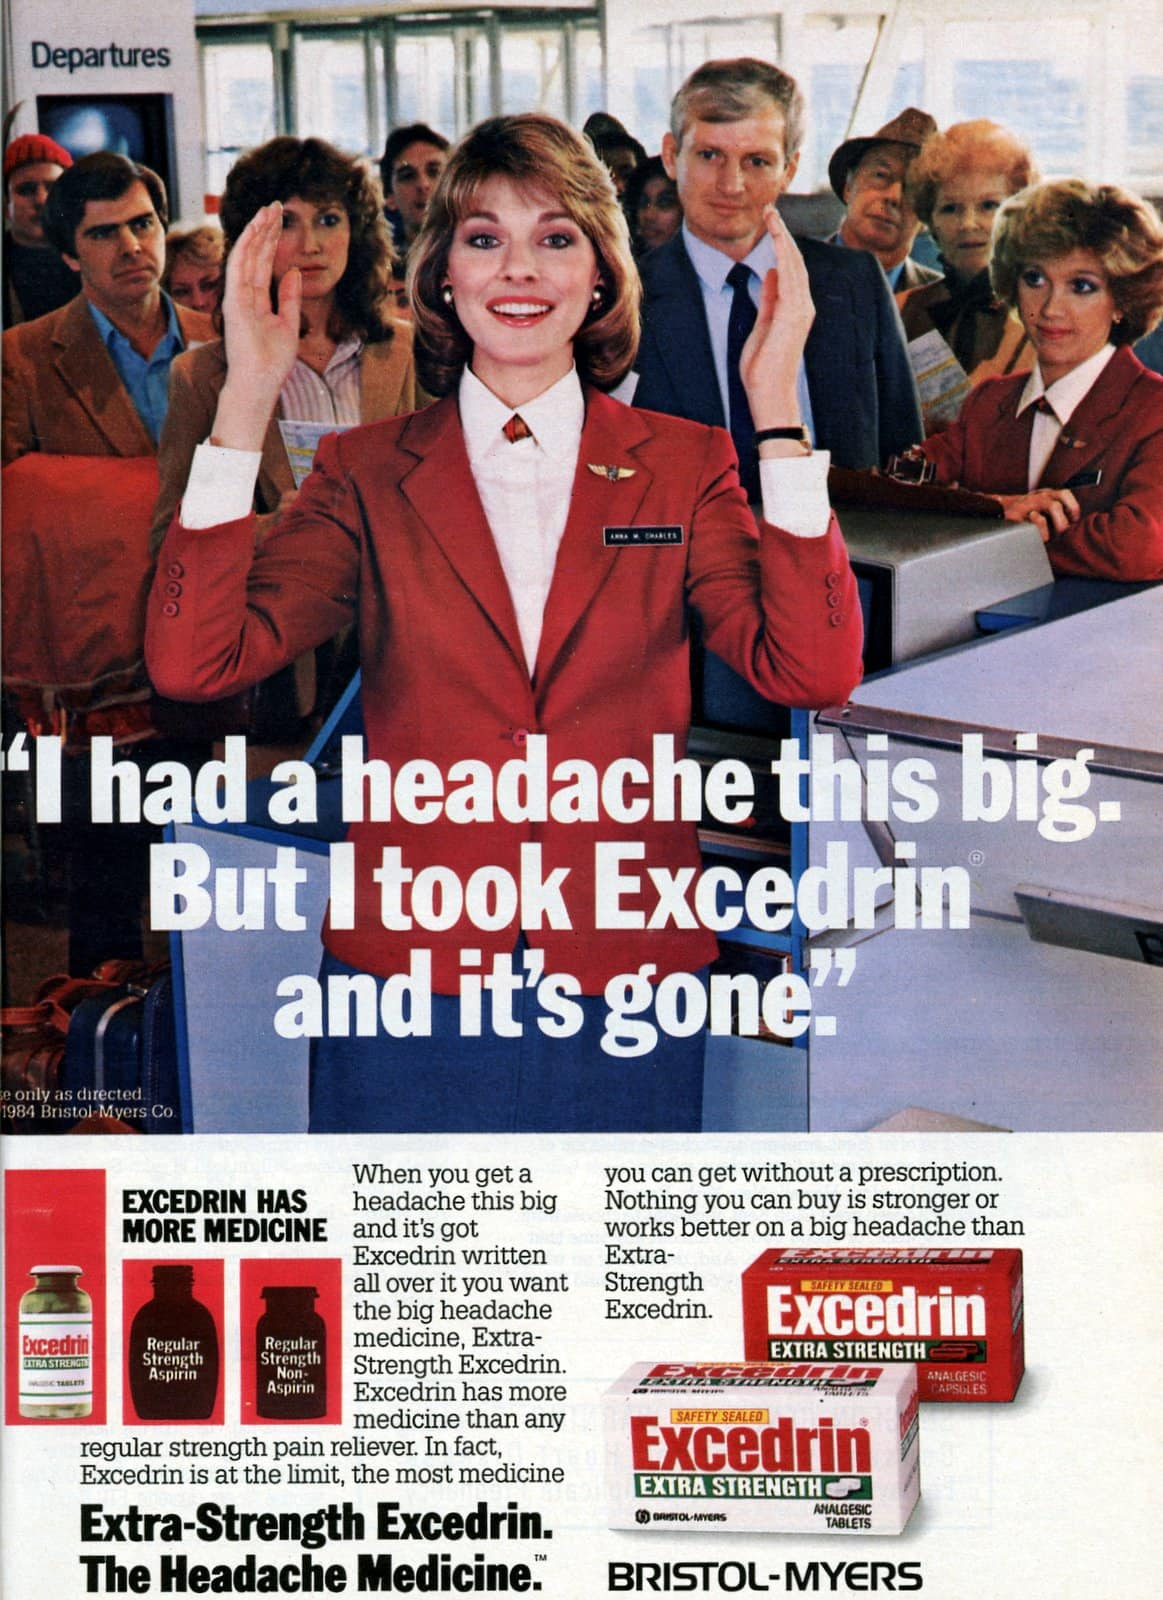 Excedrin I had a headache THIS big (1985)